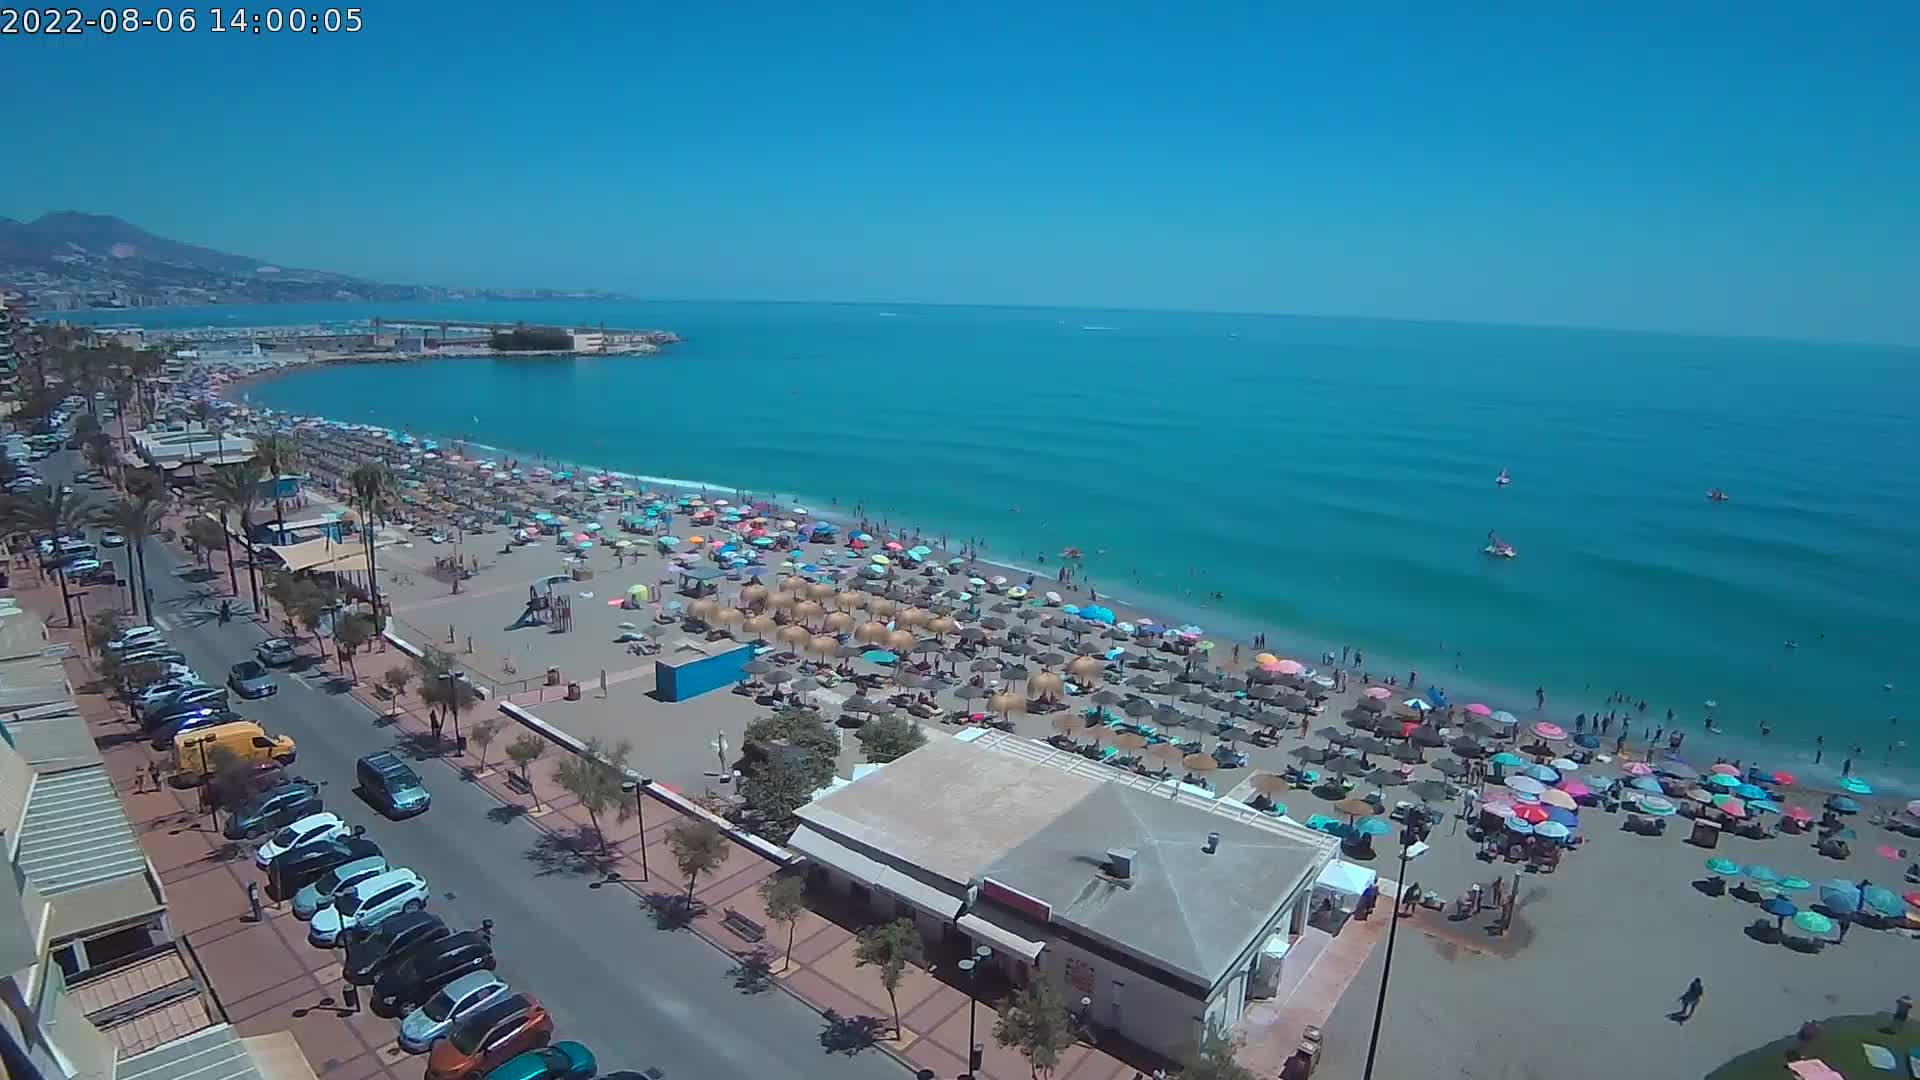 La luna restaurant fuengirola webcam